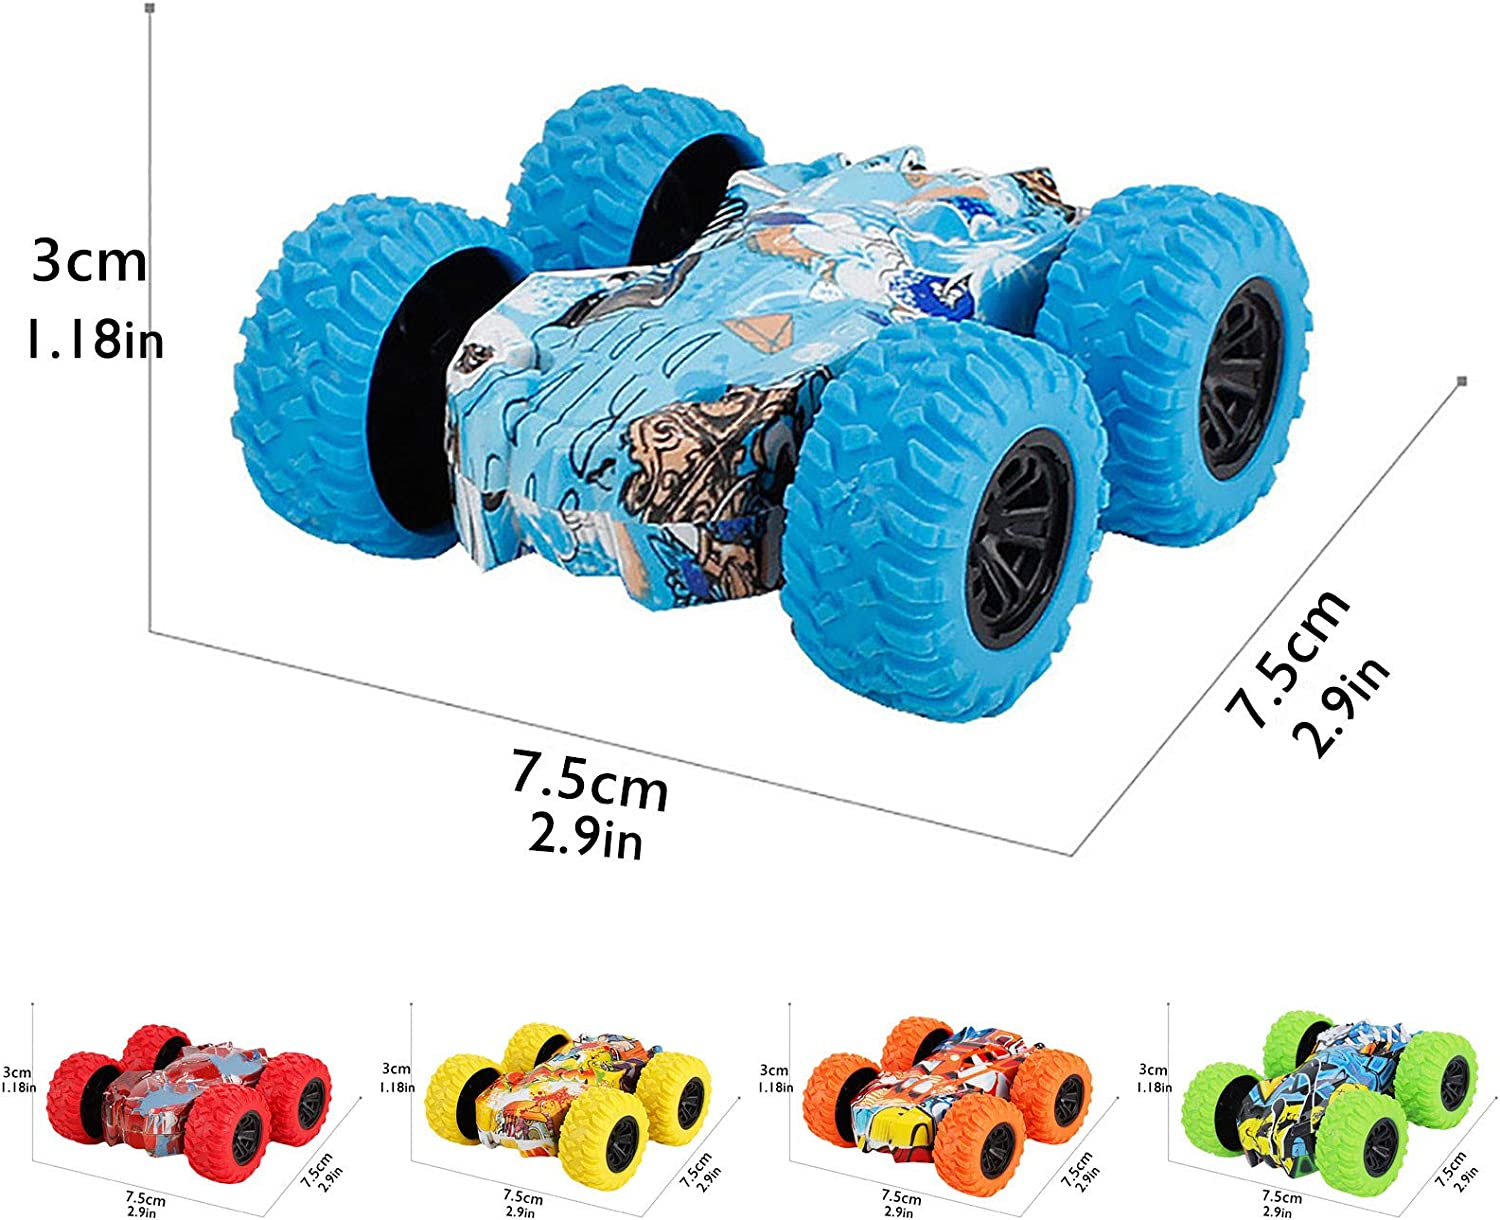 360 Degree Rotating Inertia Car Toys Inertia-Double Side Pull Back Cars Friction Powered Vehicles Stunt Graffiti Car Off Road Model Toy Car Birthday Christmas Party Festival Gift for Kids